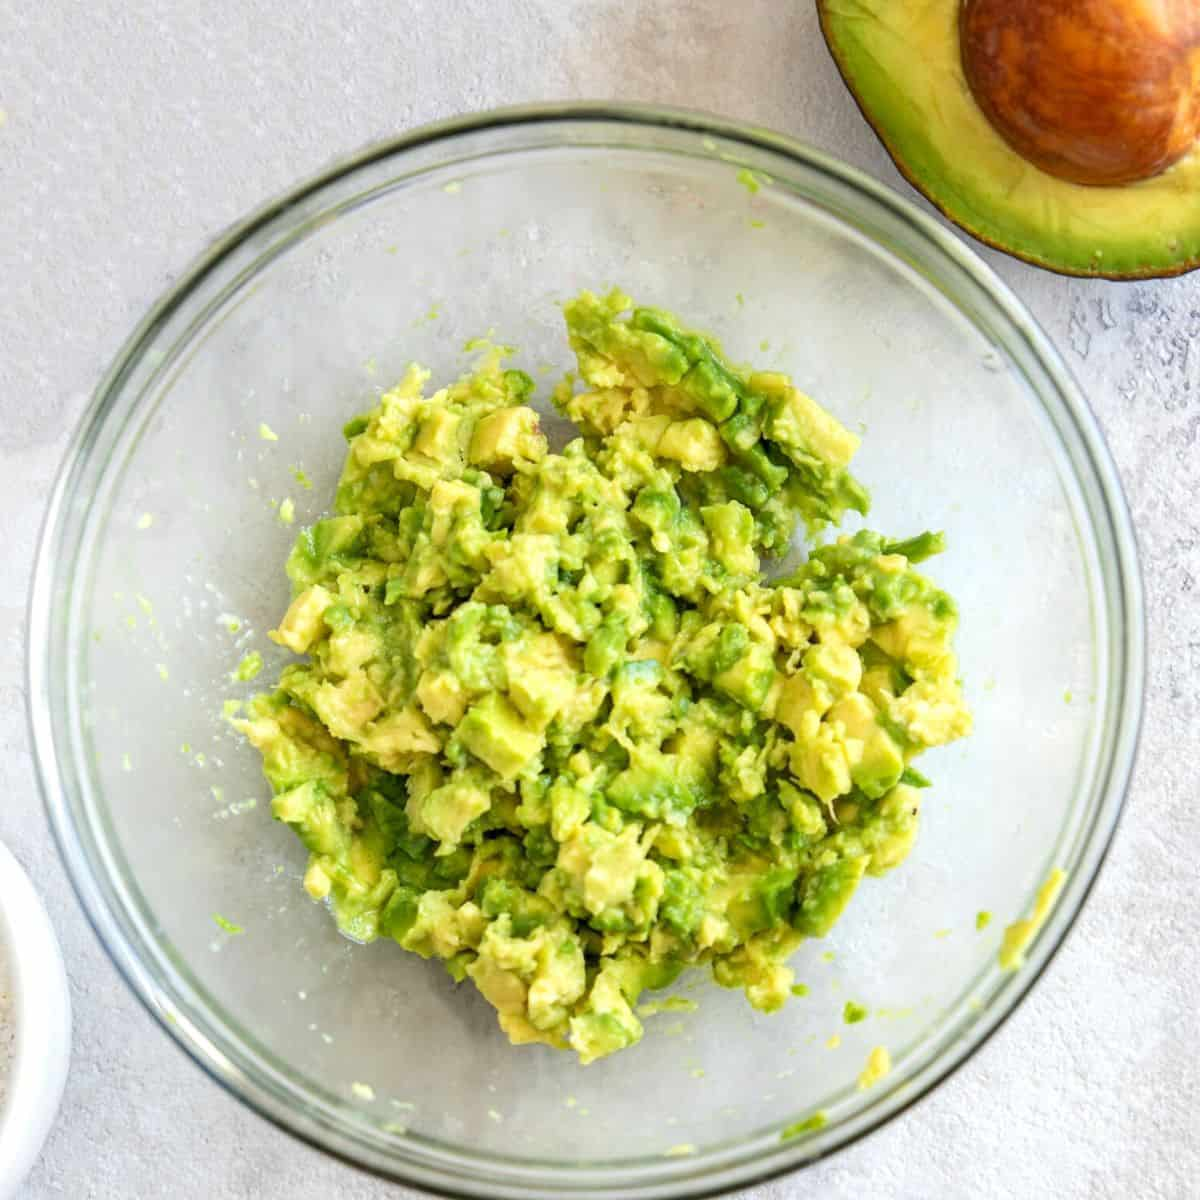 Mashed avocado in bowl with whole avocado next to it.